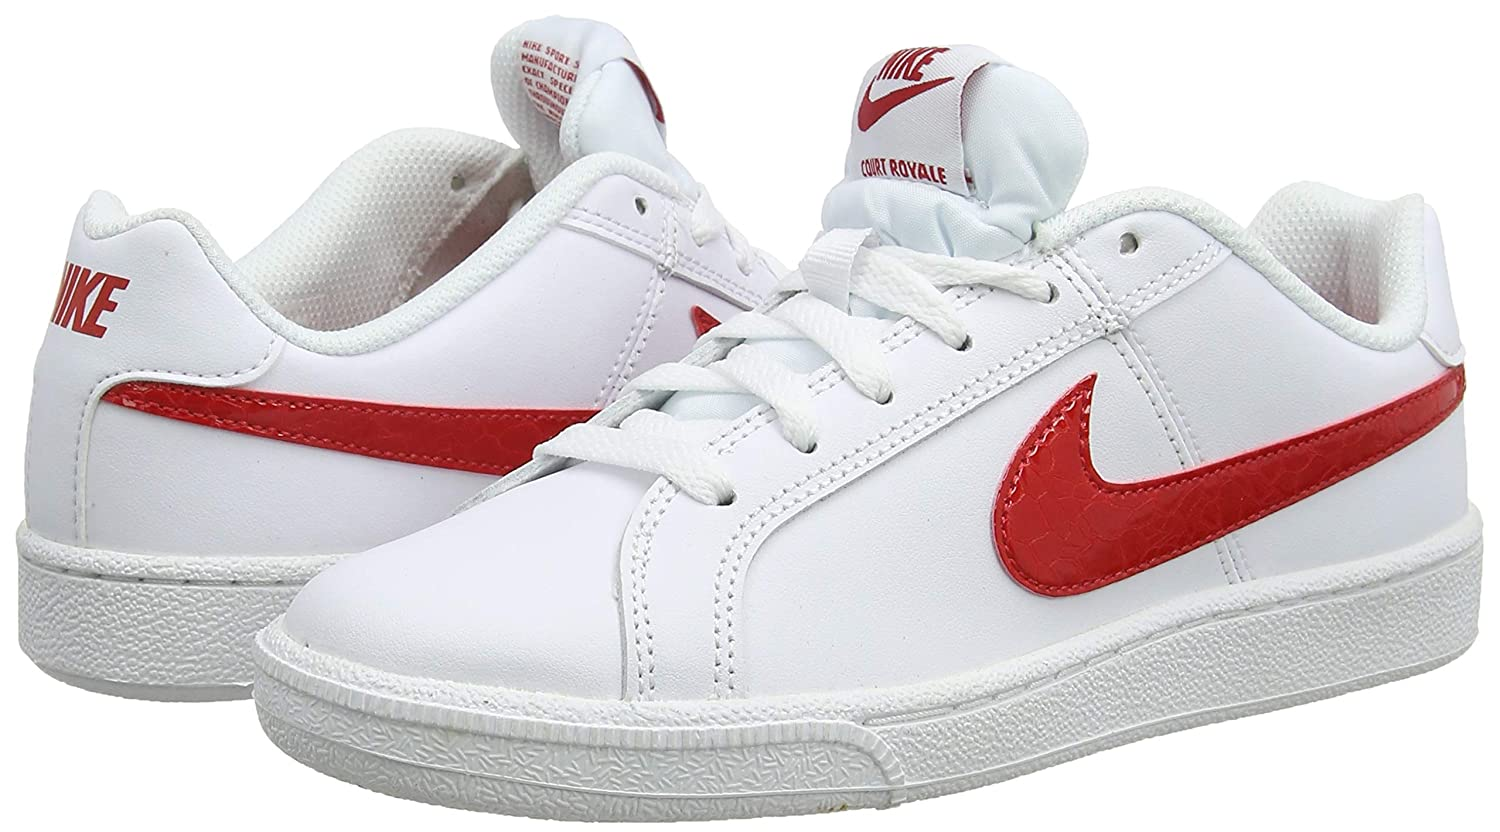 pretty nice 106ae ff601 Nike WMNS Court Royale, Sneakers Basses Femme, Multicolore University Red White  114, 44.5 EU  Amazon.fr  Chaussures et Sacs